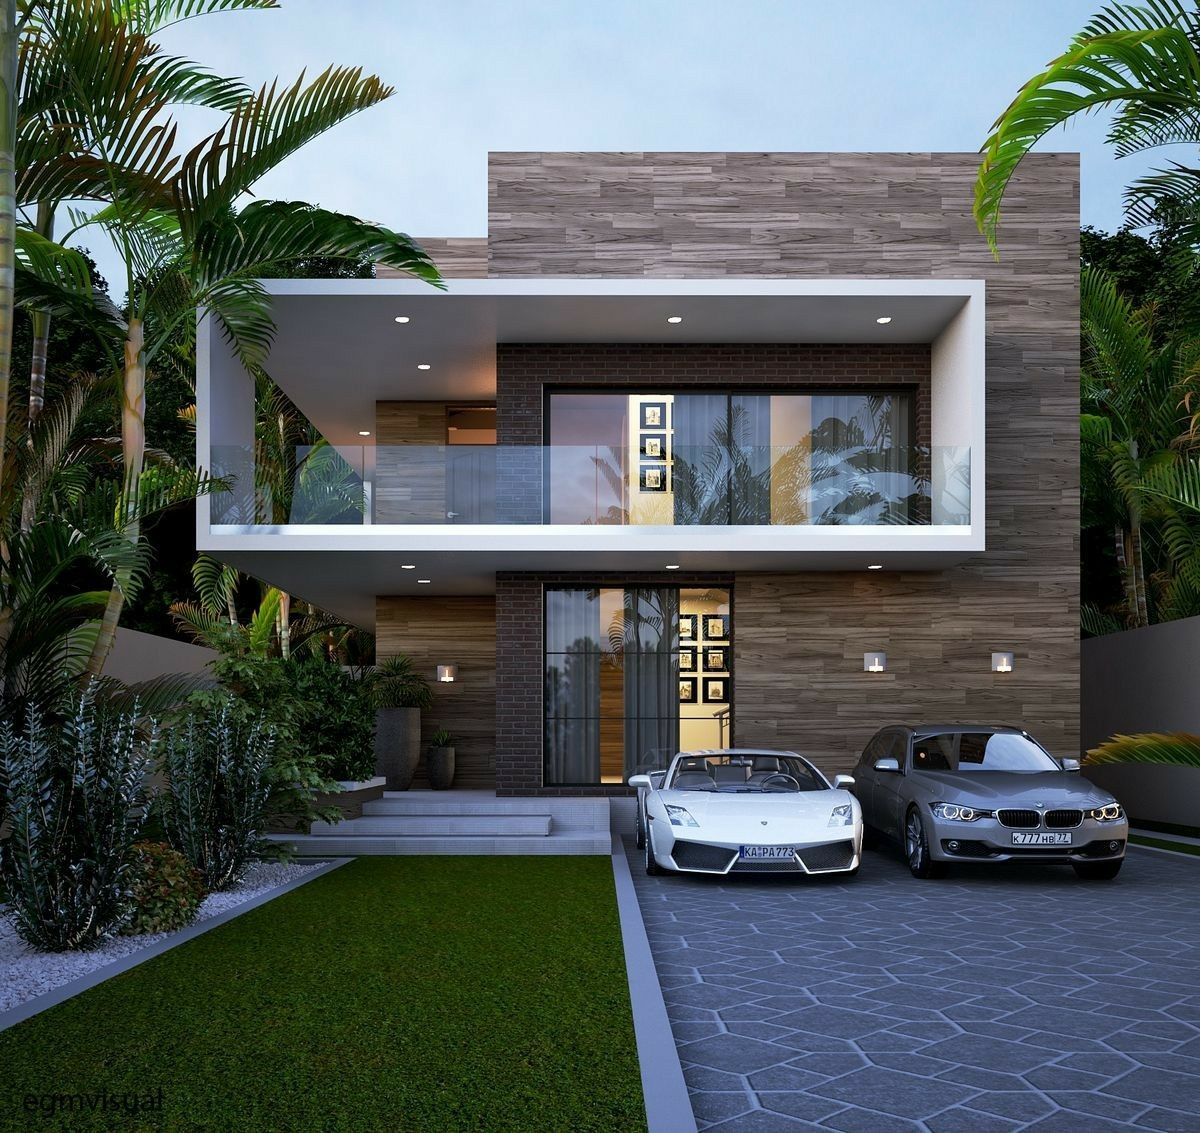 Home Design Ideas Architecture: Pin By GHoliday On Living Like A Boss!!!